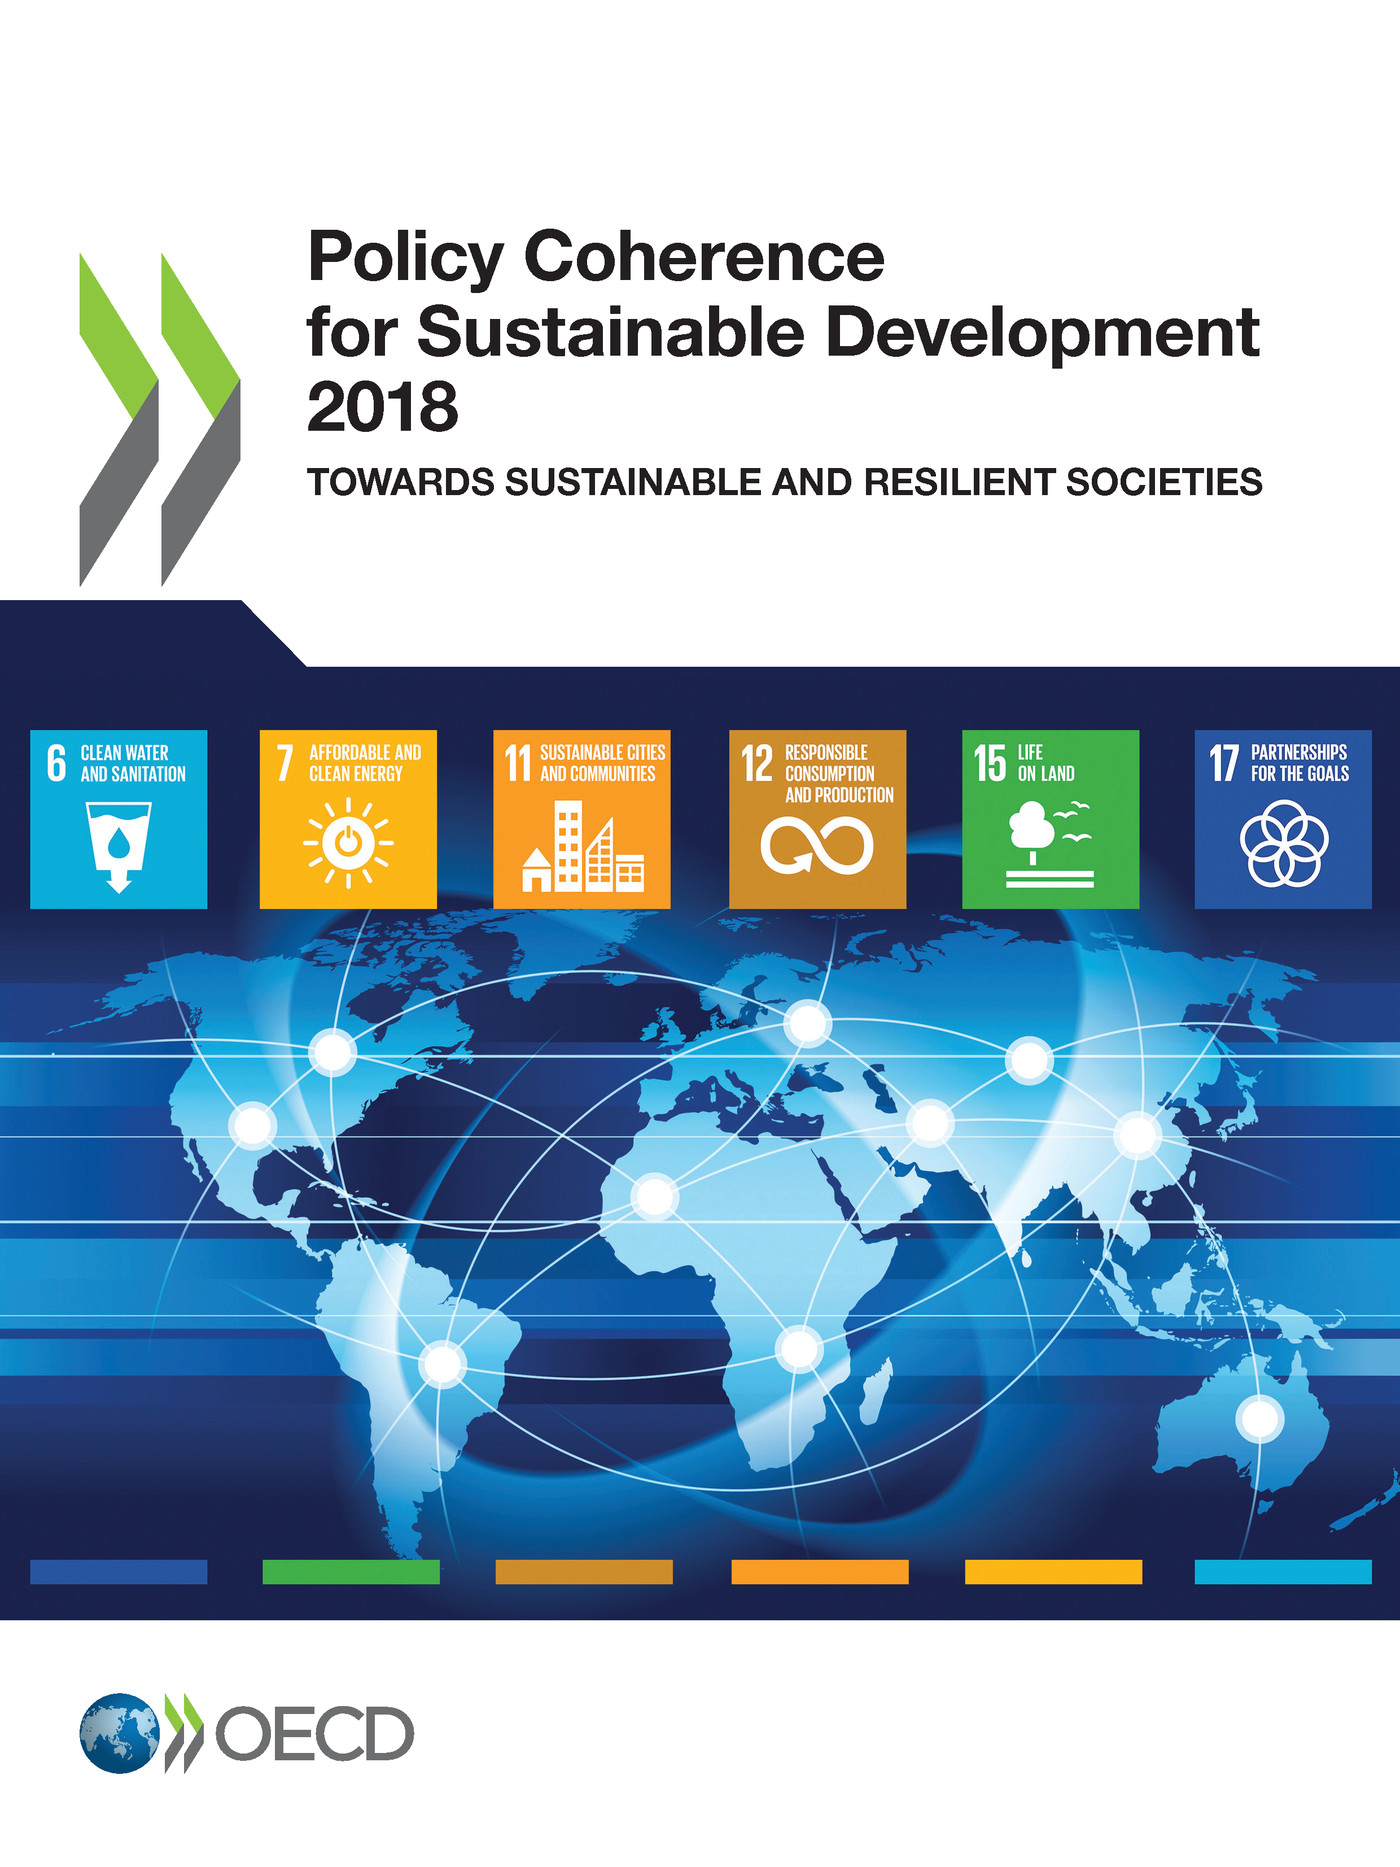 Policy Coherence for Sustainable Development 2018 De  Collectif - OCDE / OECD